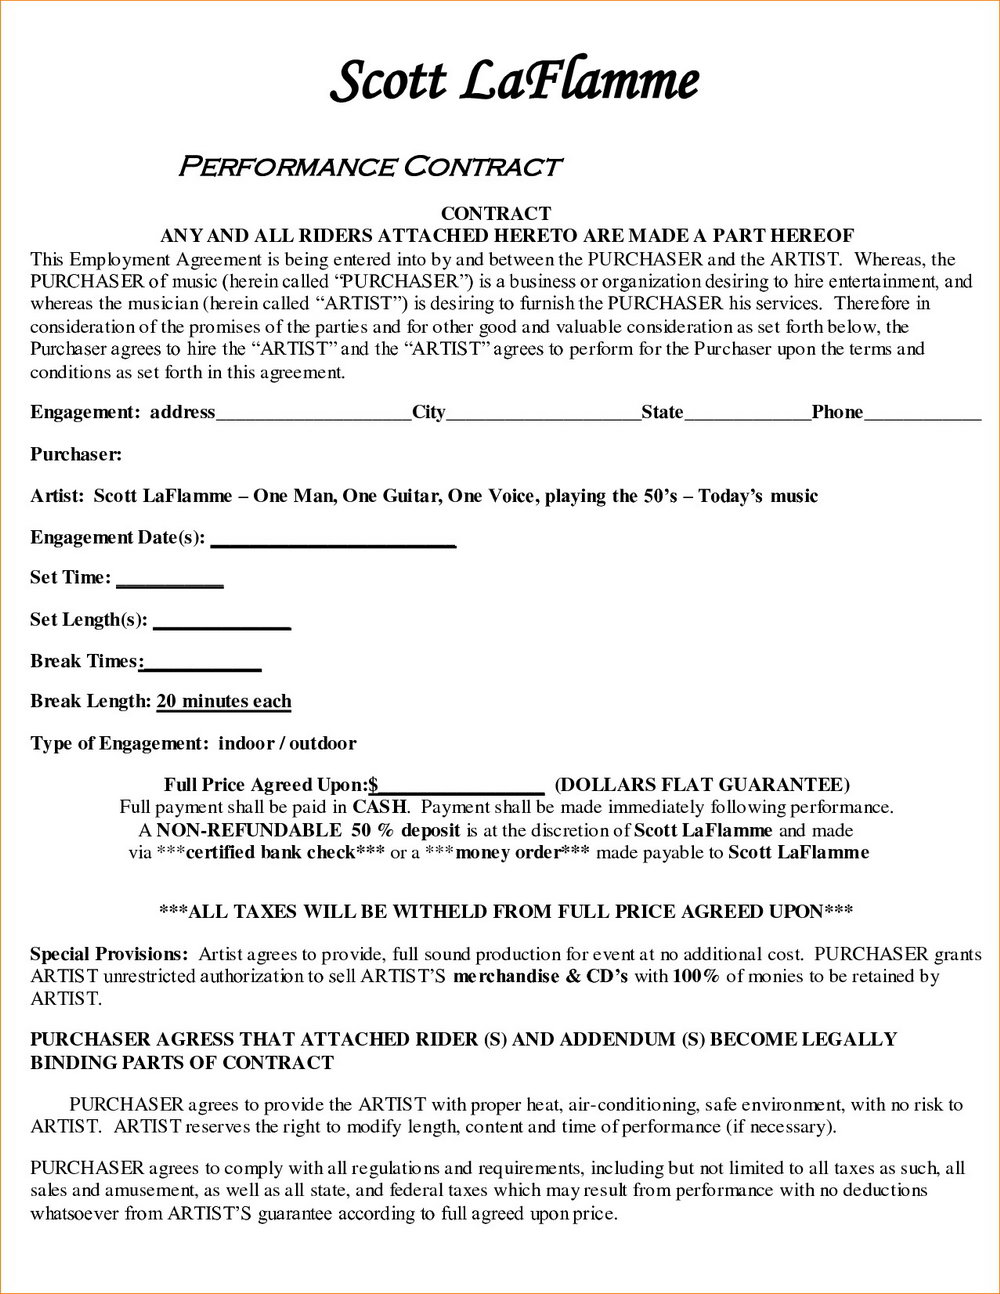 Performing Artist Contract Template